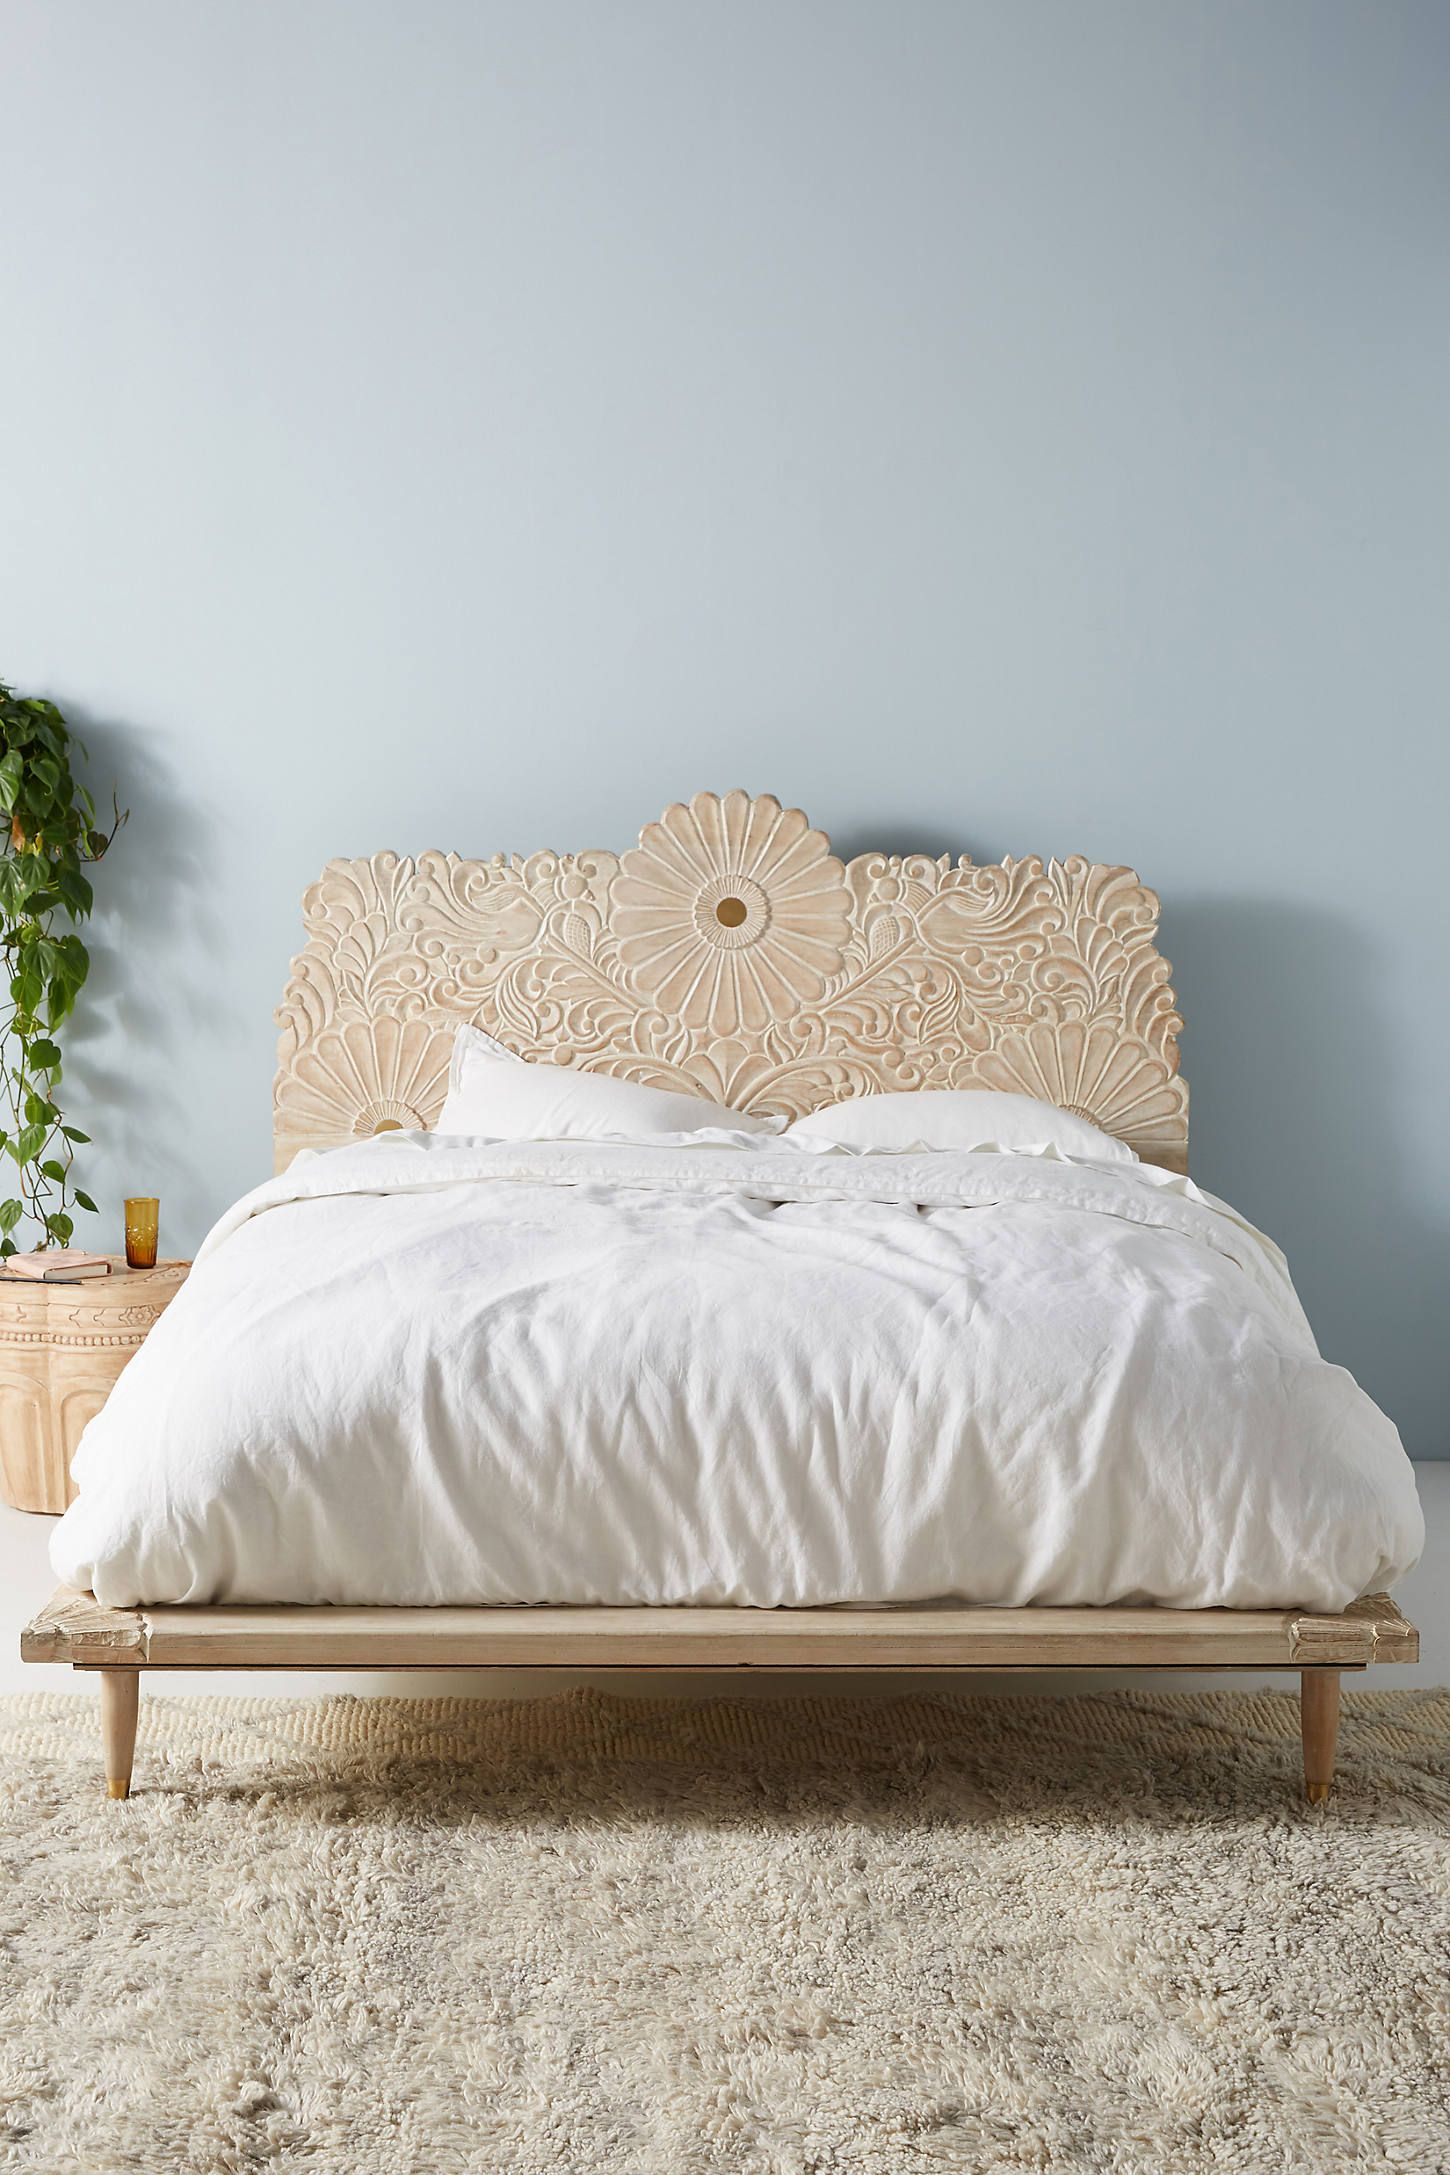 Gulliver Bed by Anthropologie The warmth of this